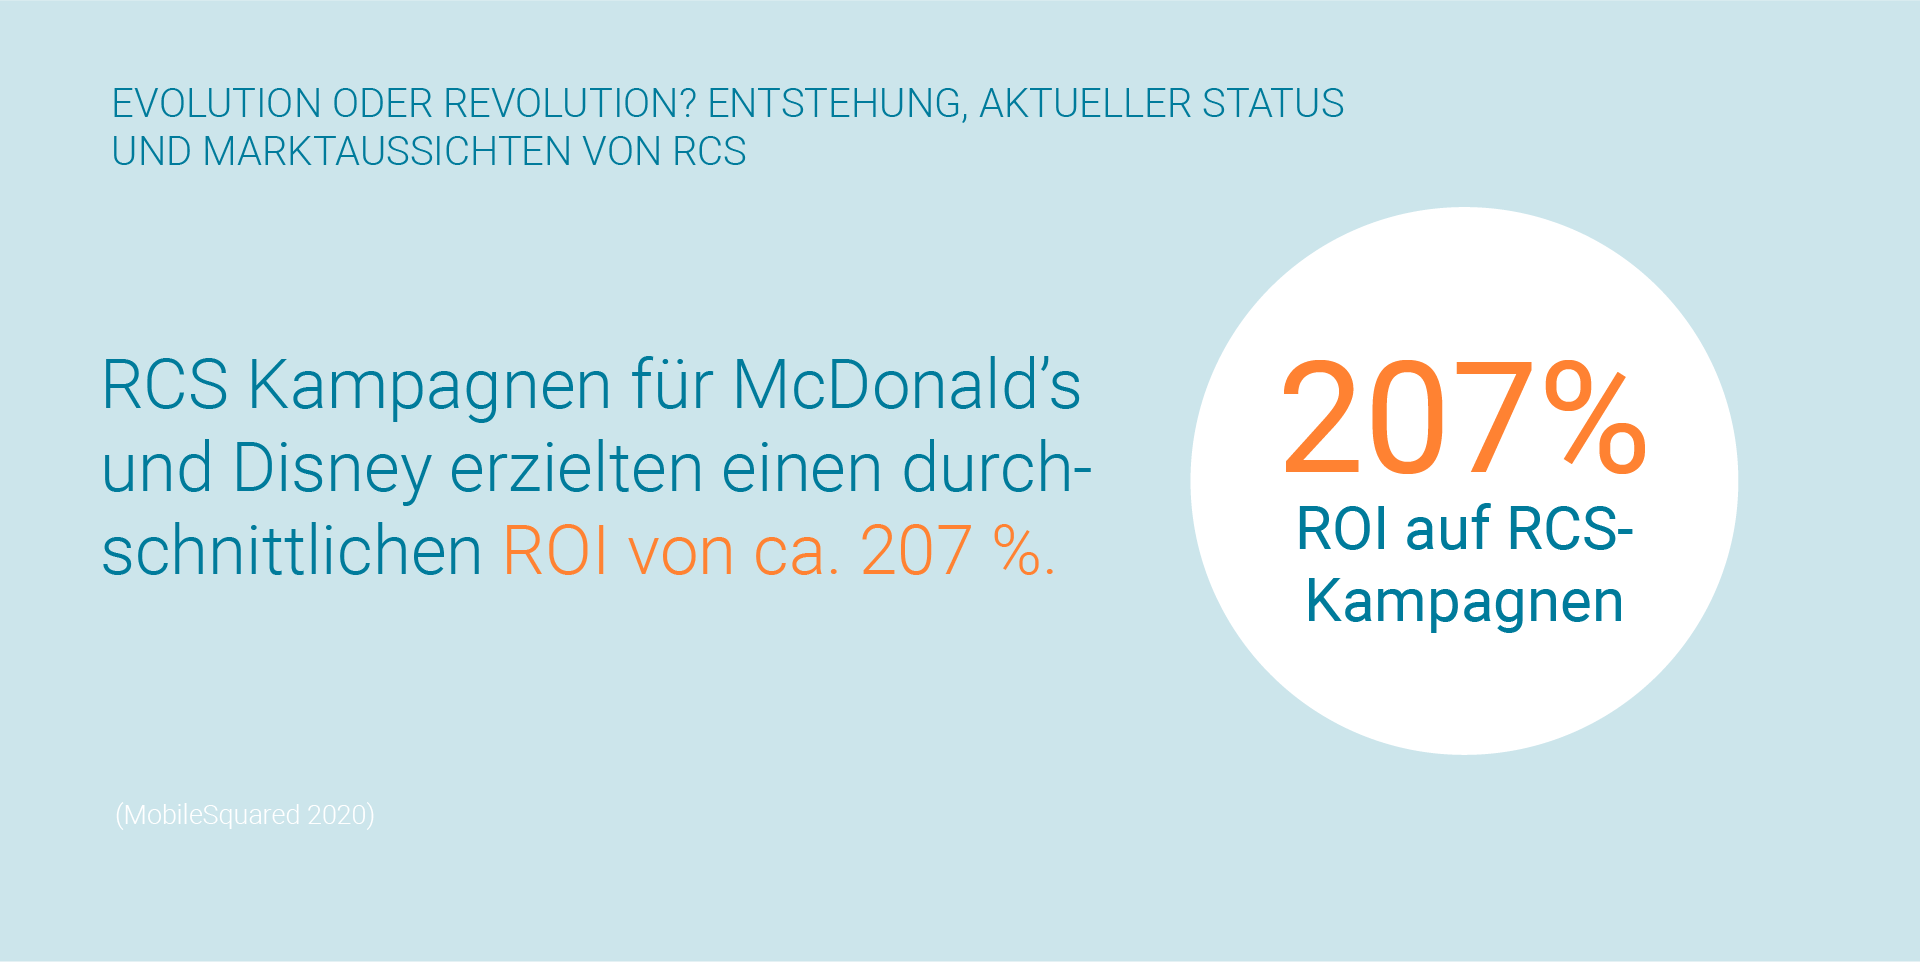 LINK Mobility - RCS 207 % ROI auf RCS-Kampagnen